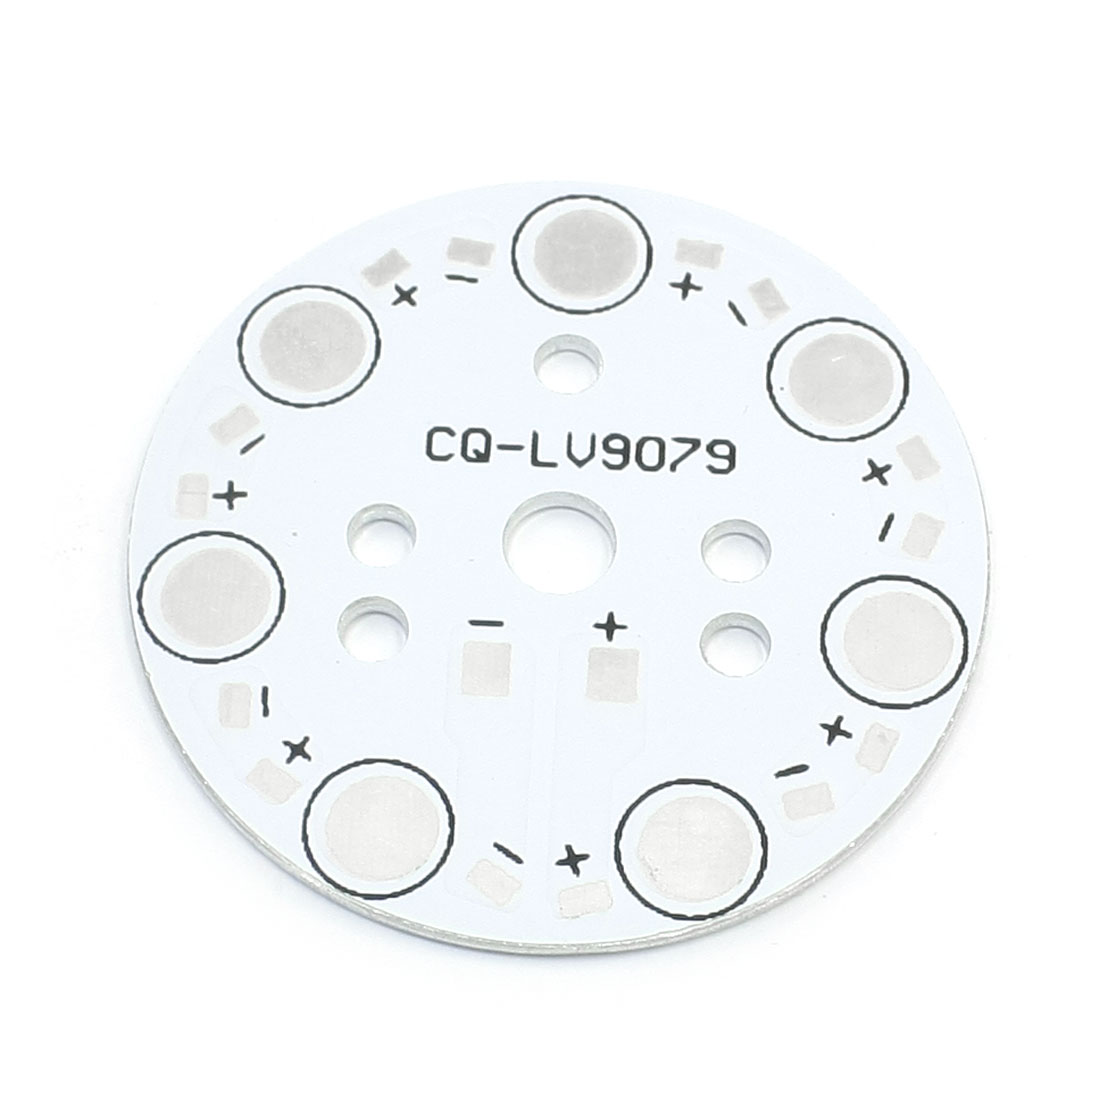 49mm Circle Aluminum PCB Circuit Board for 7pcs x 1W 3W 5W LED in Series